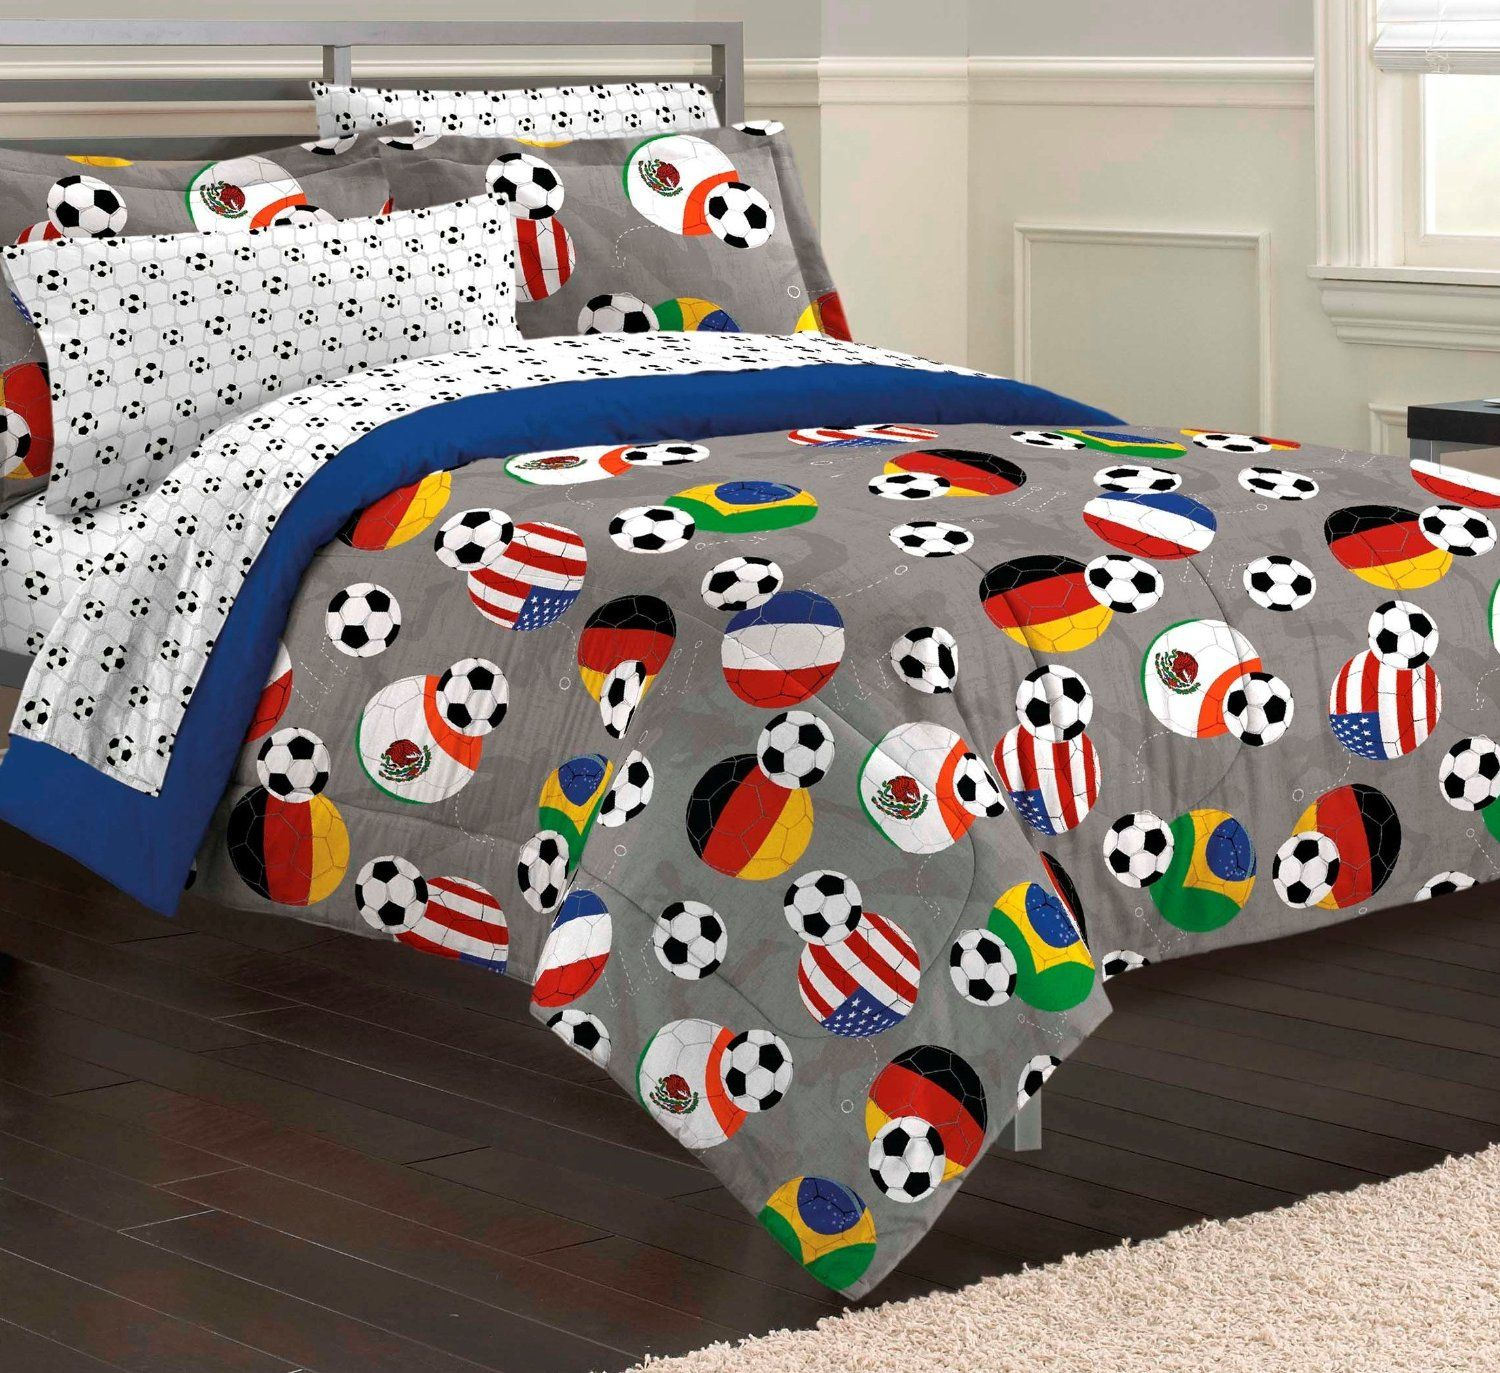 queen size preloo and excelent batman comics of pictures from cheap bedding com target black sets give your kohls kids king superman white with sheets feel to twin organic double quilt hd bedspread bedroom cover full rooftop boys purple set comforter the